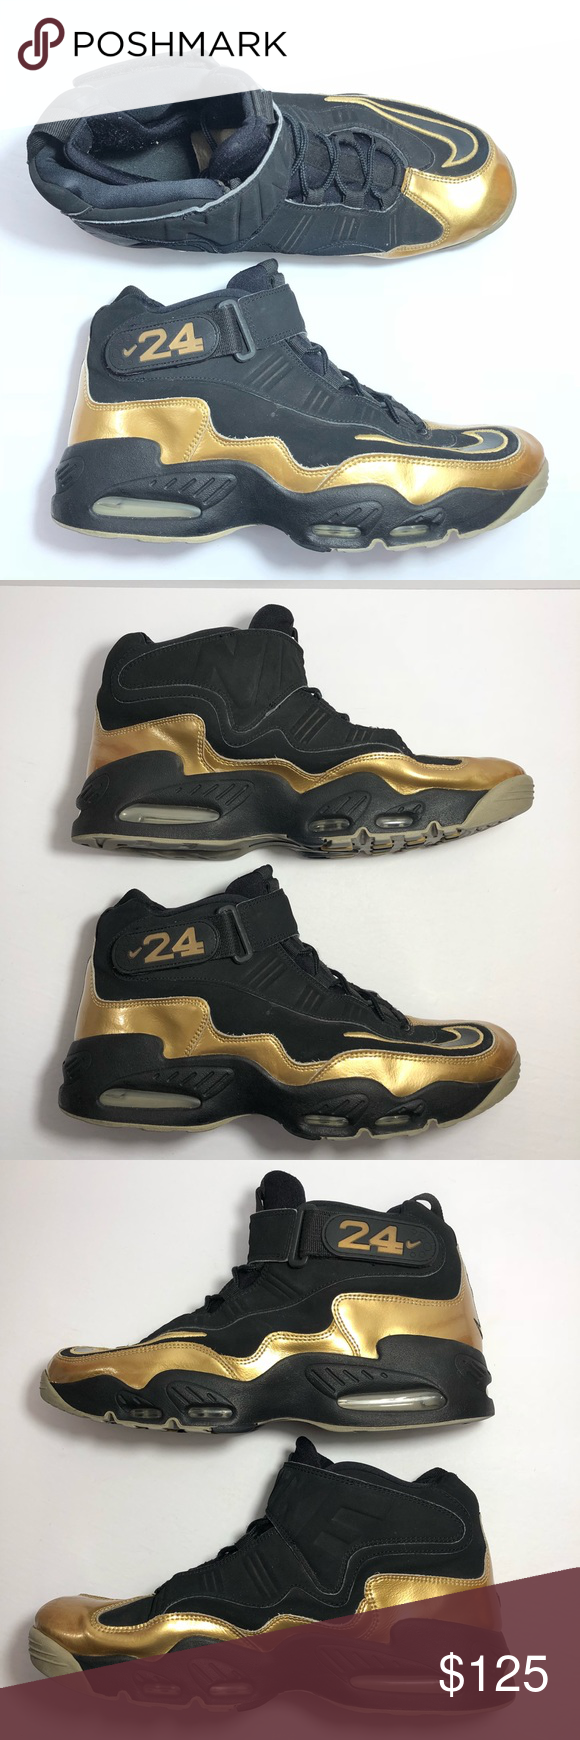 the latest 7b4c4 2bc78 Nike Air Griffey Max 1 Black 354912-006 Shoes Preowned but in good  condition. Does show signs of wear please see photos! Shoe 392 Nike Shoes  Athletic Shoes